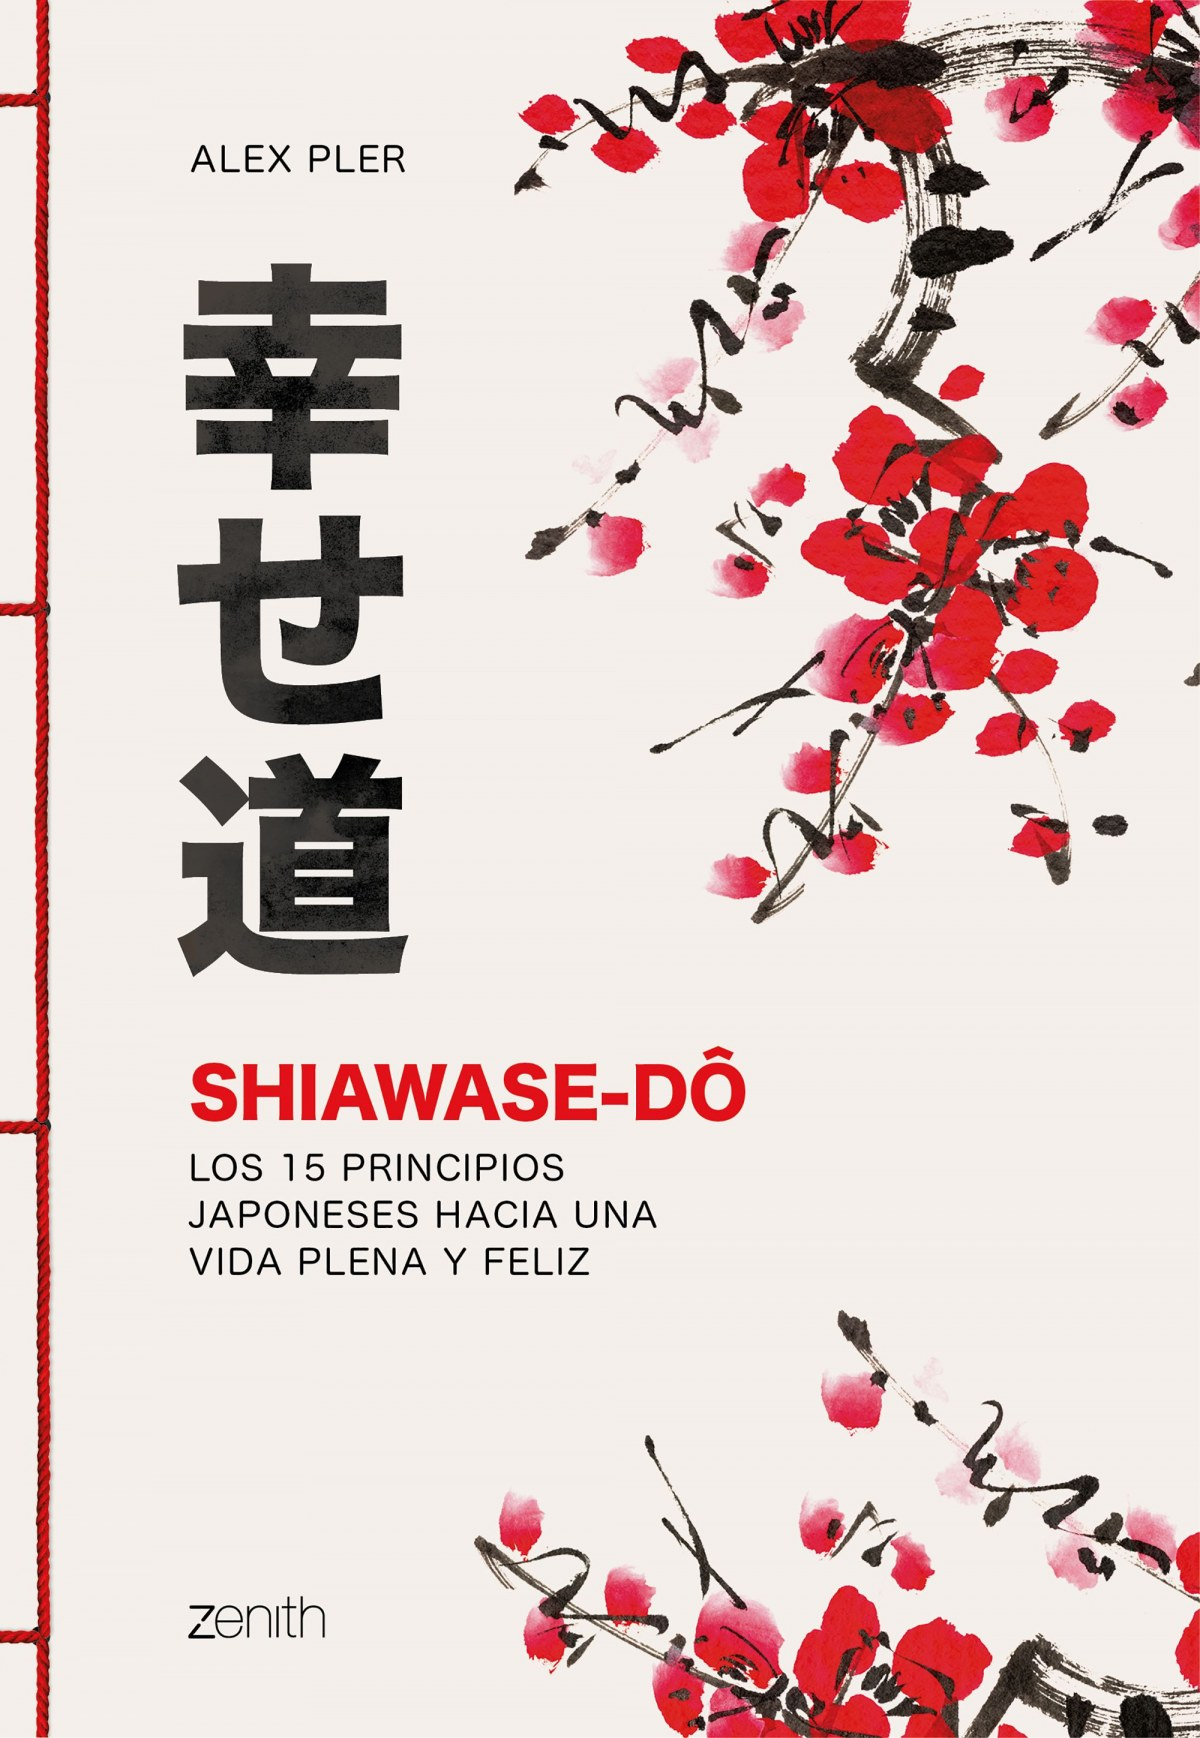 SHIAWASE-DO